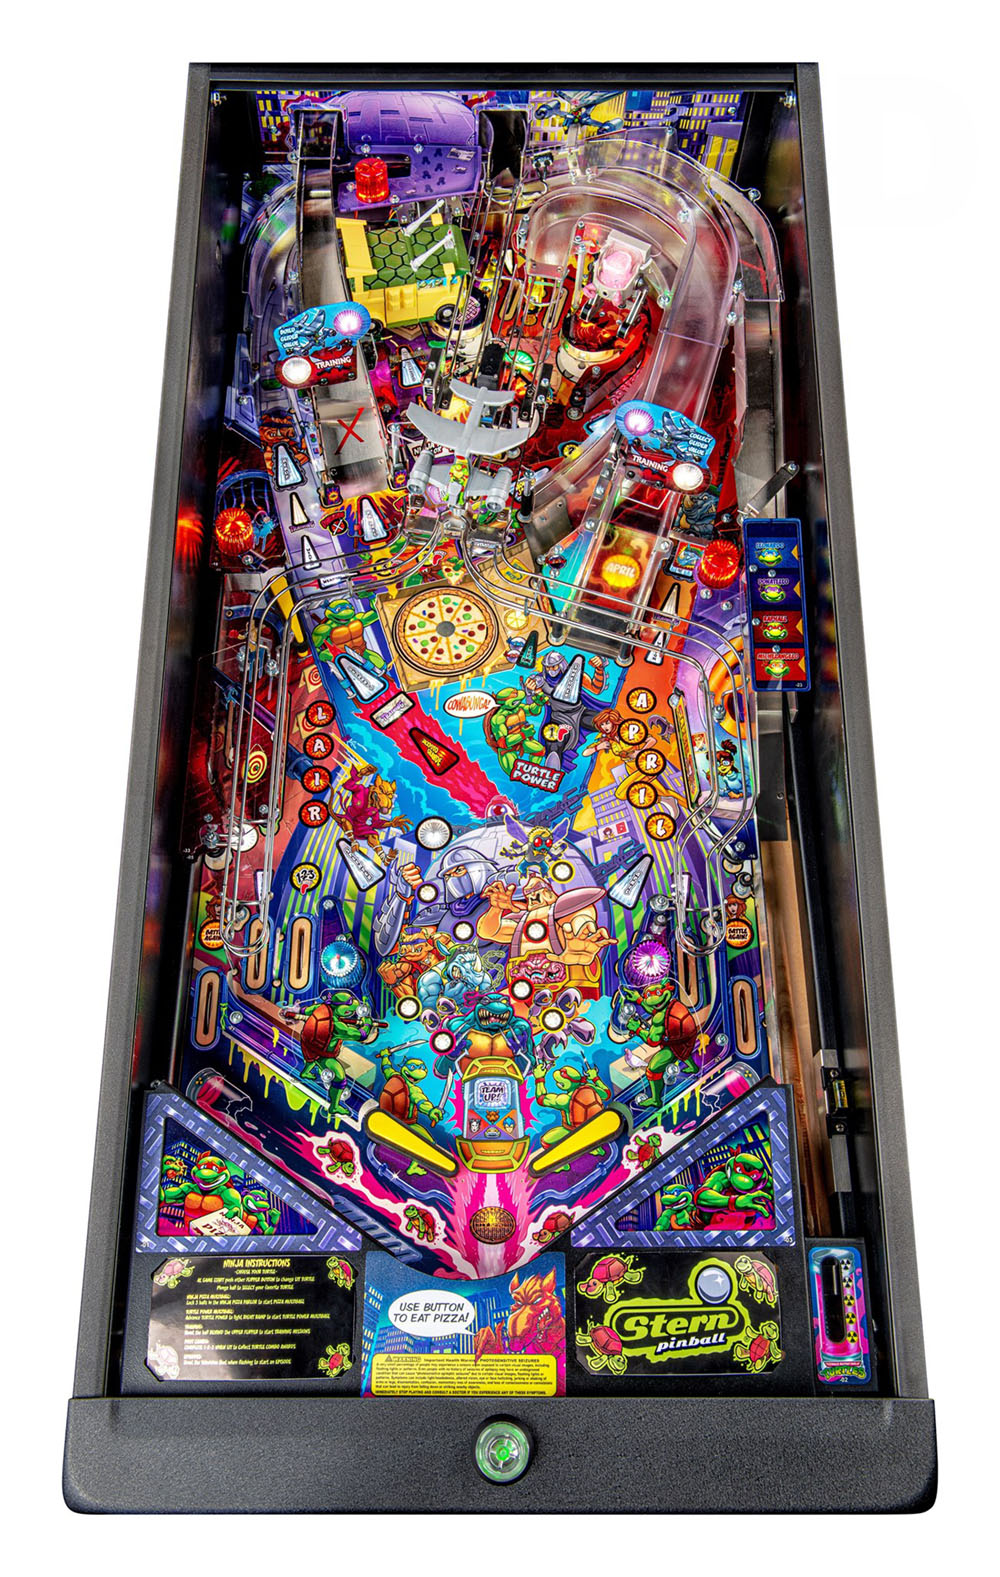 Teenage Mutant Ninja Turtles Premium Pinball Machine - Playfield Plan